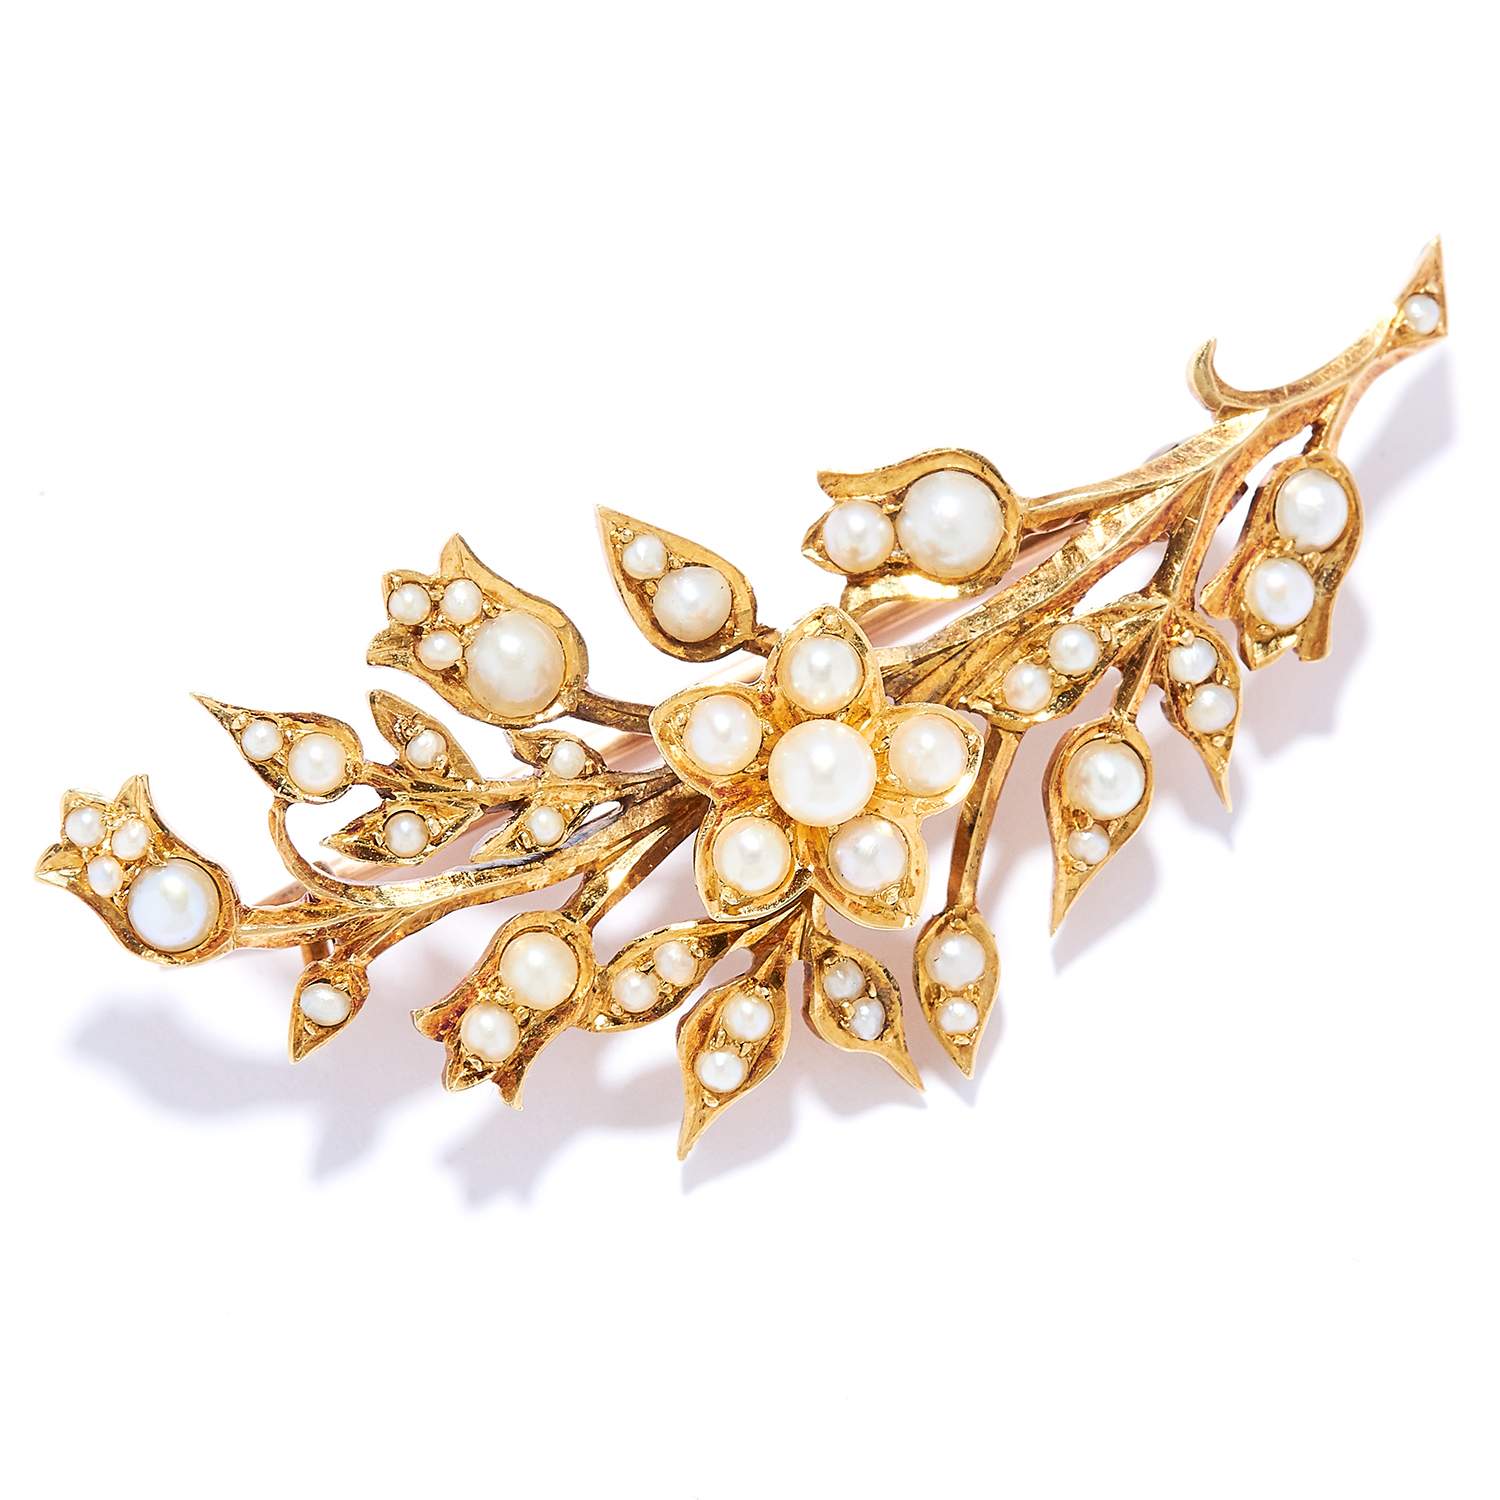 Los 30 - ANTIQUE SEED PEARL BROOCH in 15CT yellow gold, in flower spray motif set with seed pearls, stamped